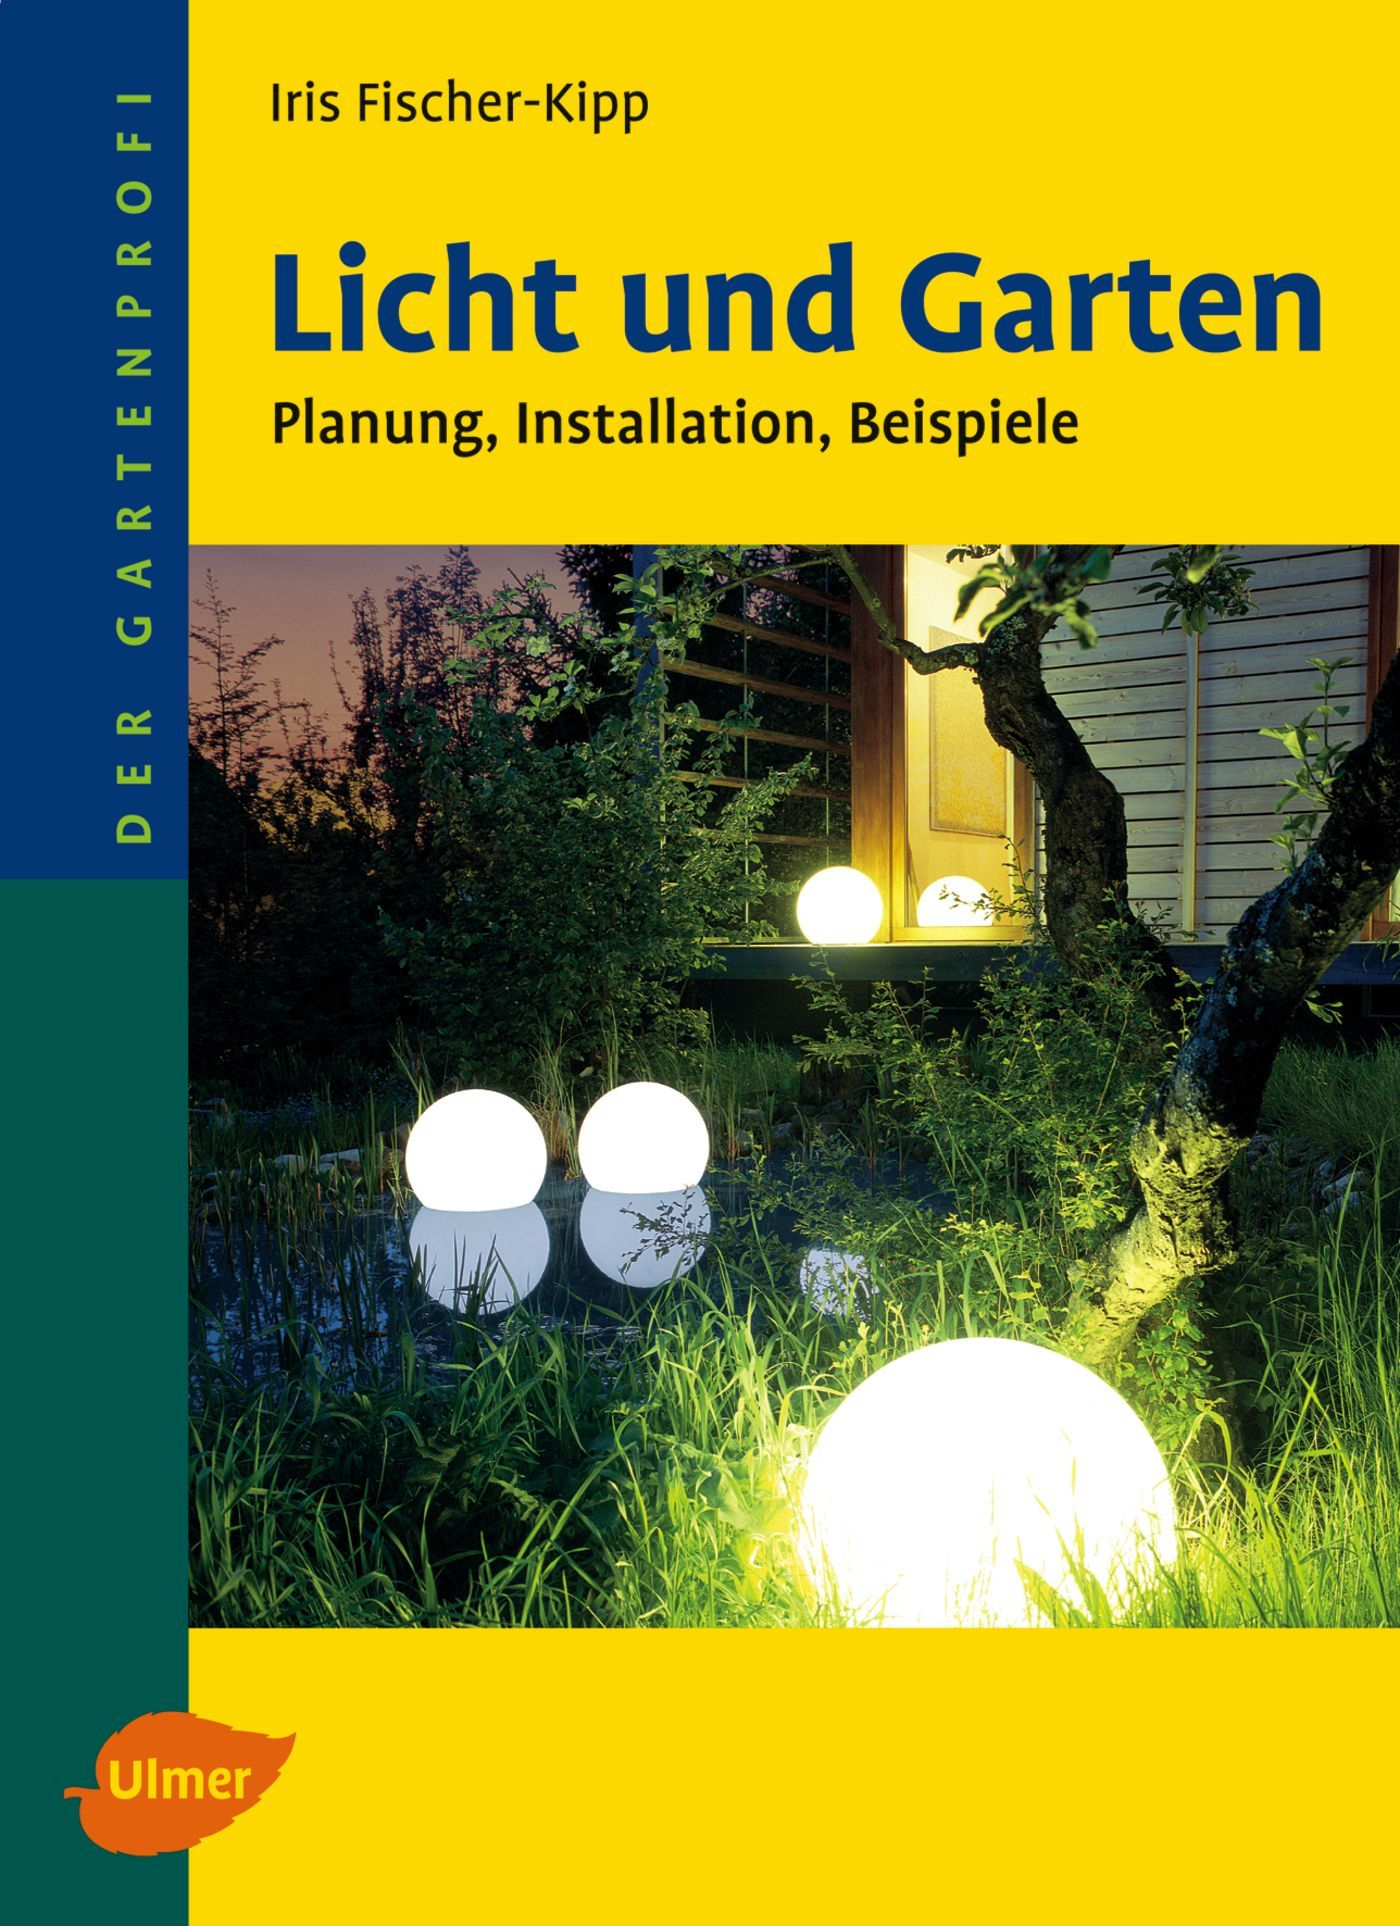 licht und garten von fischer kipp iris planung installation beispi. Black Bedroom Furniture Sets. Home Design Ideas